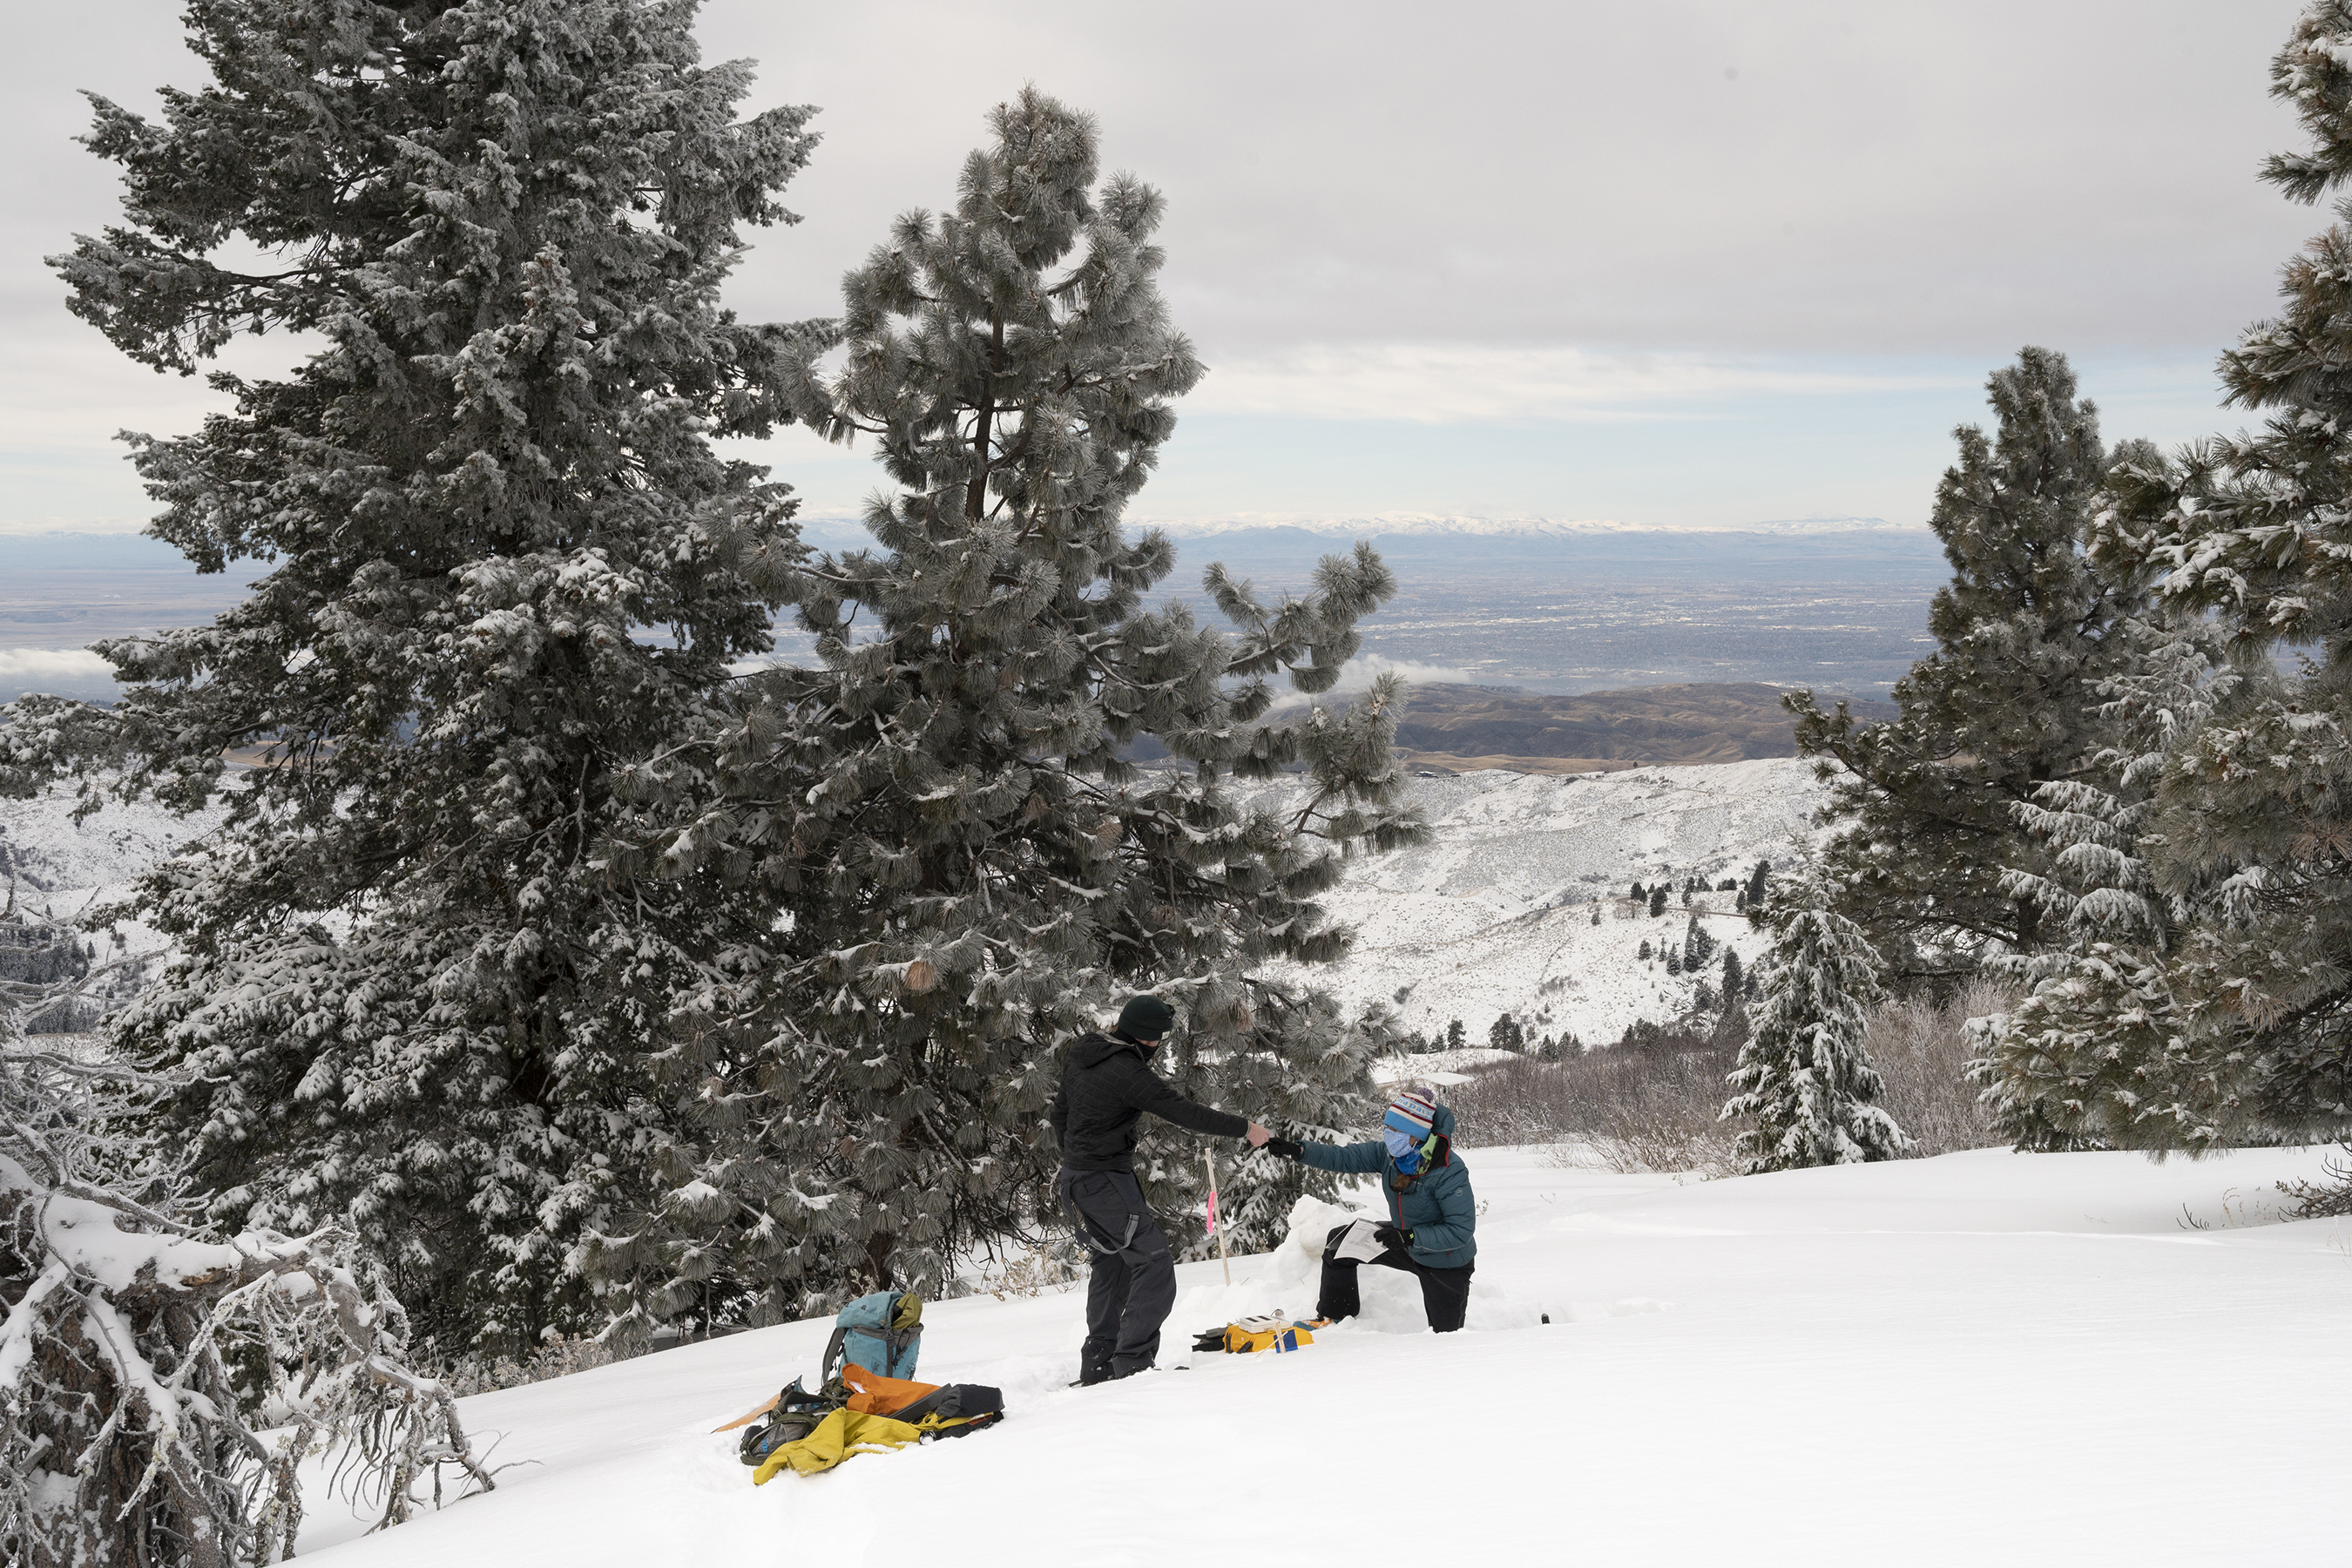 students dig on snowy mountainside